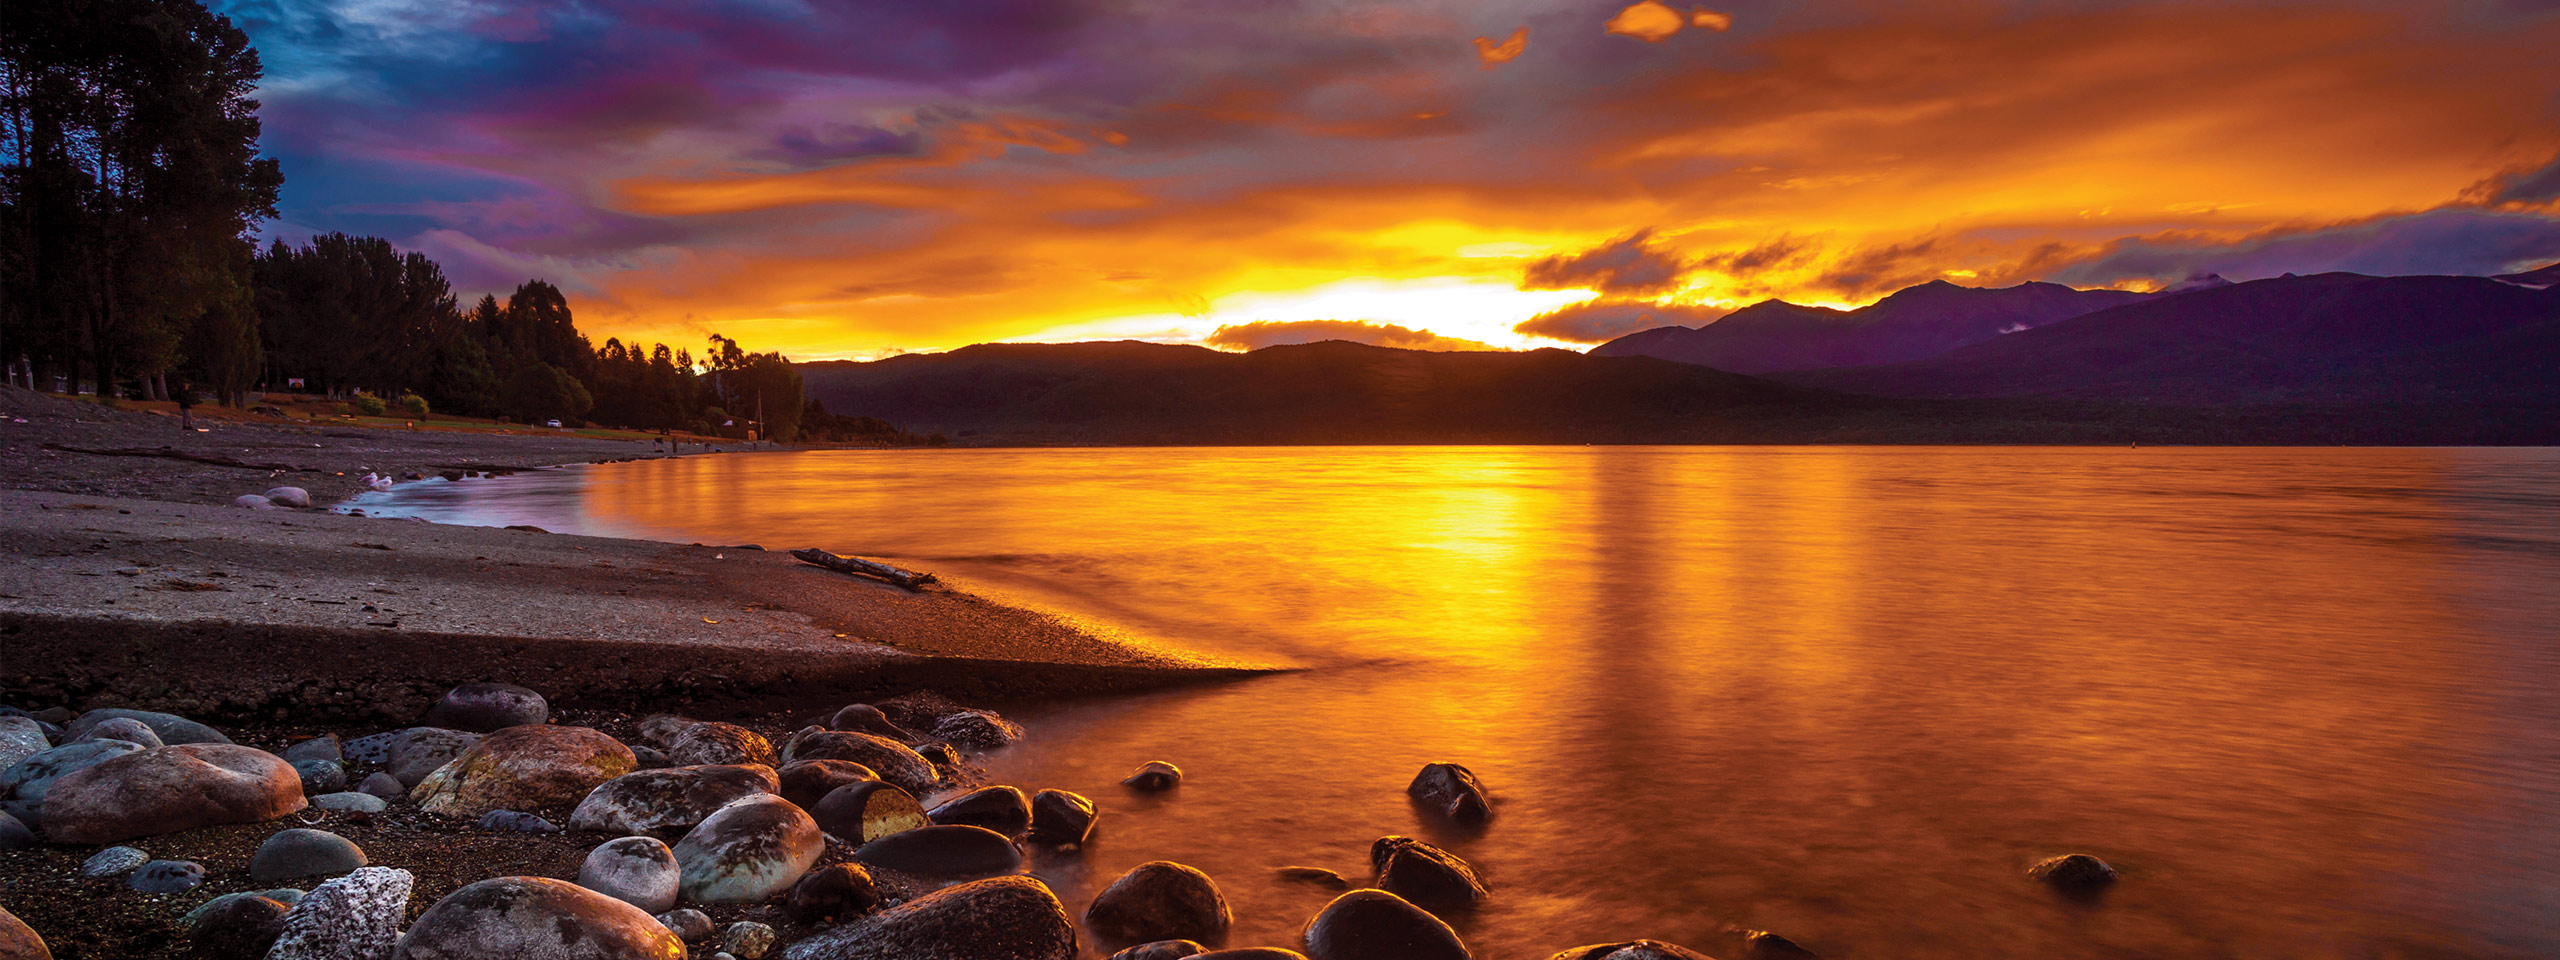 Lake Te Anau at sunset